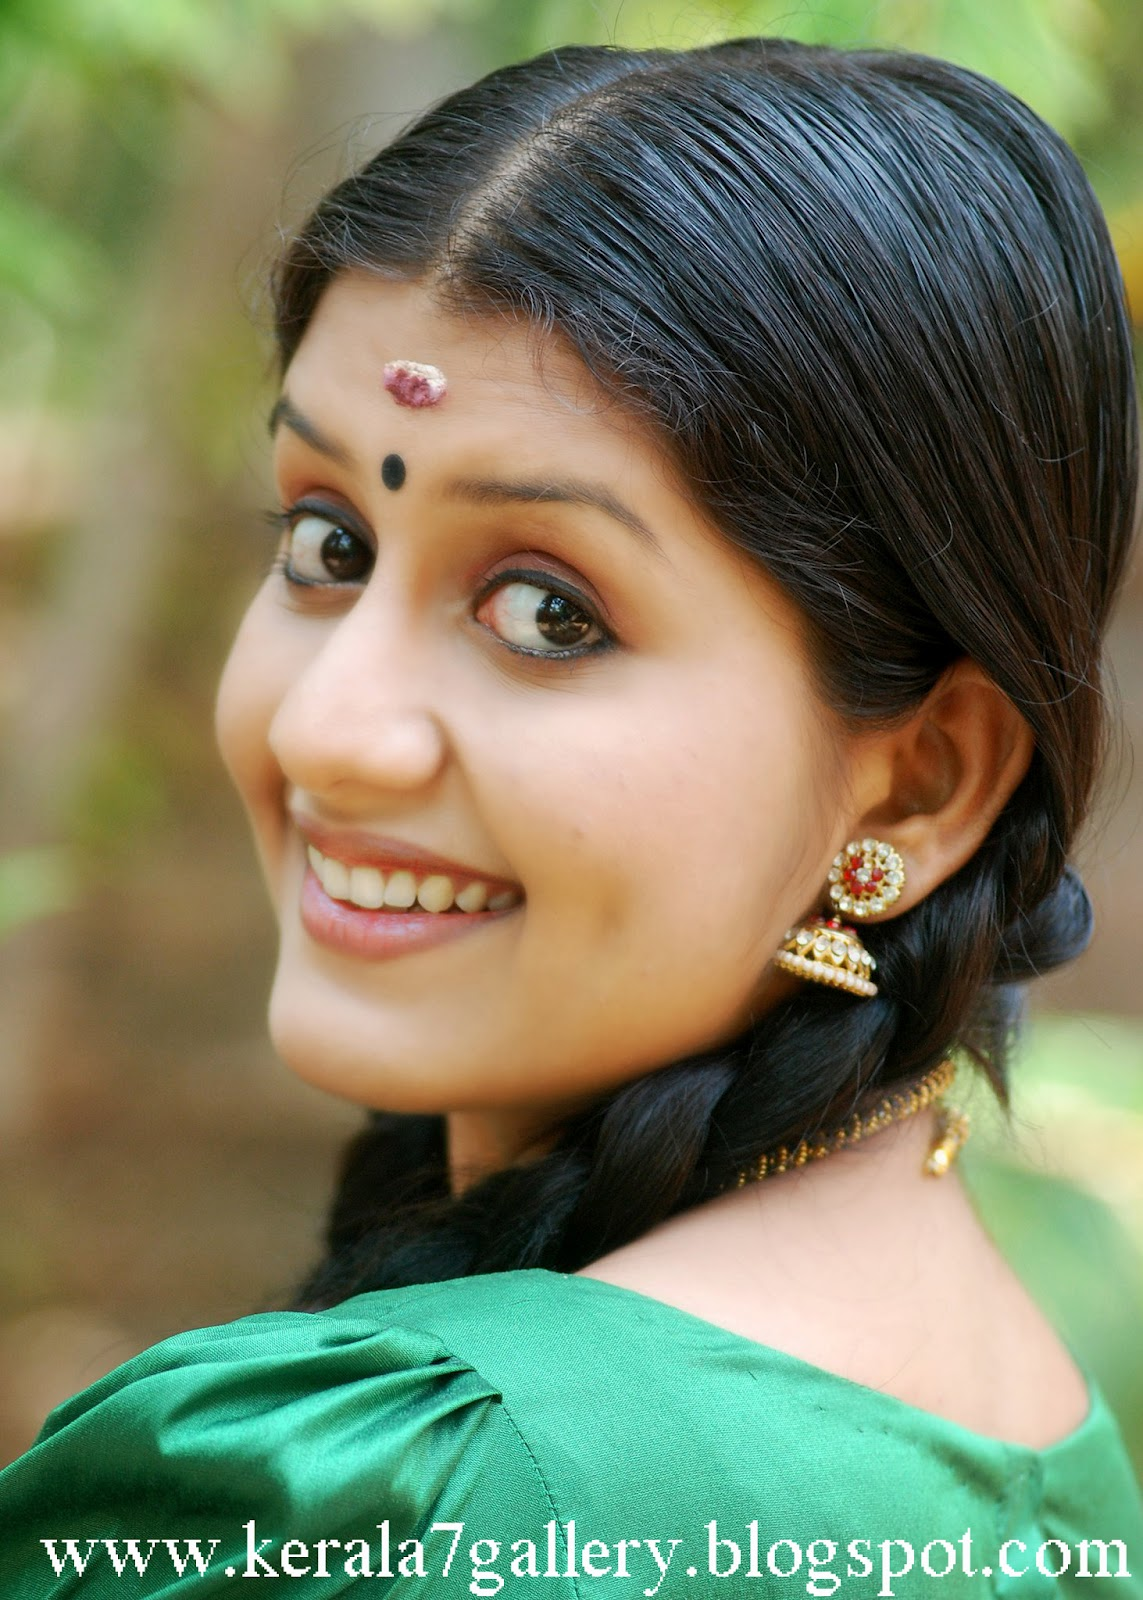 Malayalam cute actress Sarayu photos